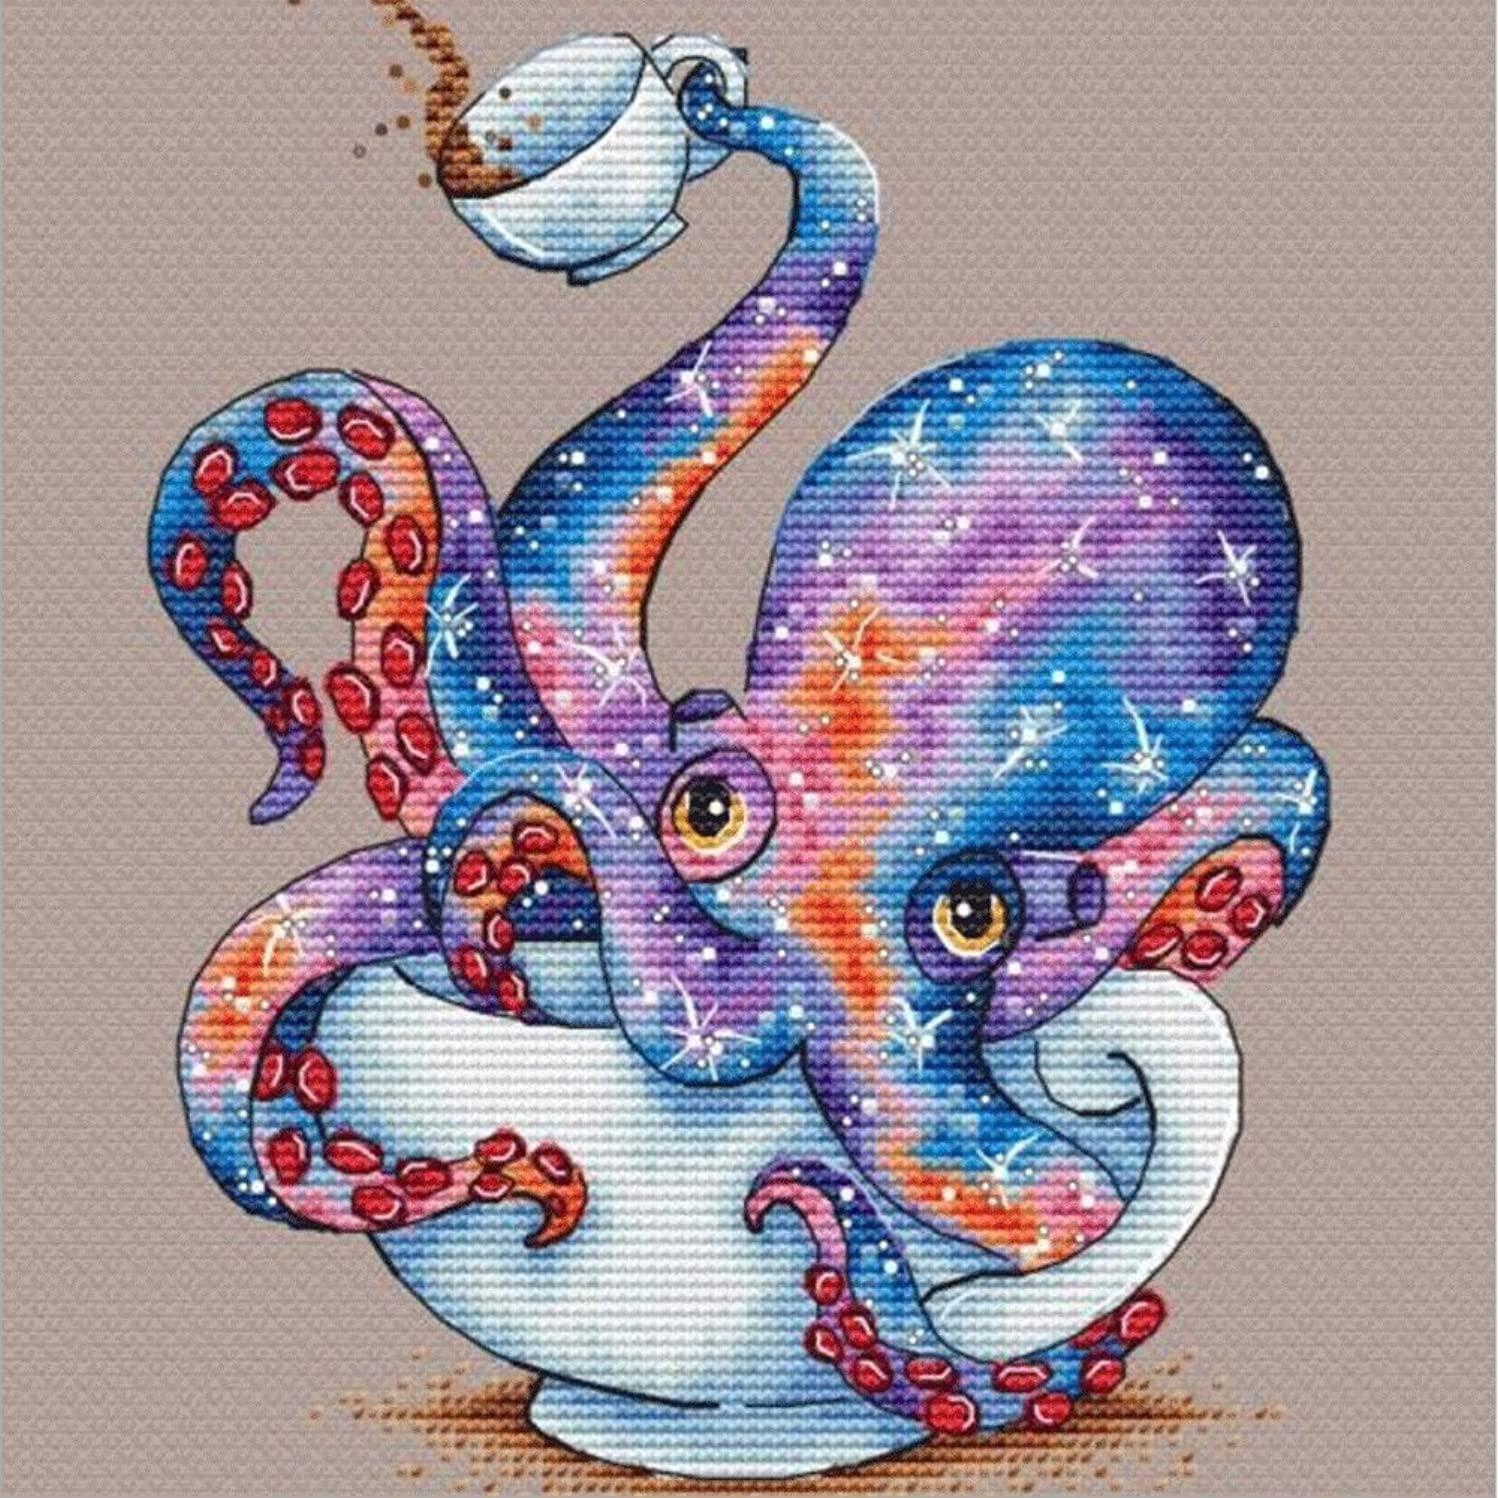 DIY 5D Diamond Painting by Number Kits, Crystal Rhinestone Diamond Embroidery Paintings Pictures Arts Craft for Home Wall Decor, Full Drill Canvas,Octopus in a Cup (LX-162BZY-11.8x11.8in)